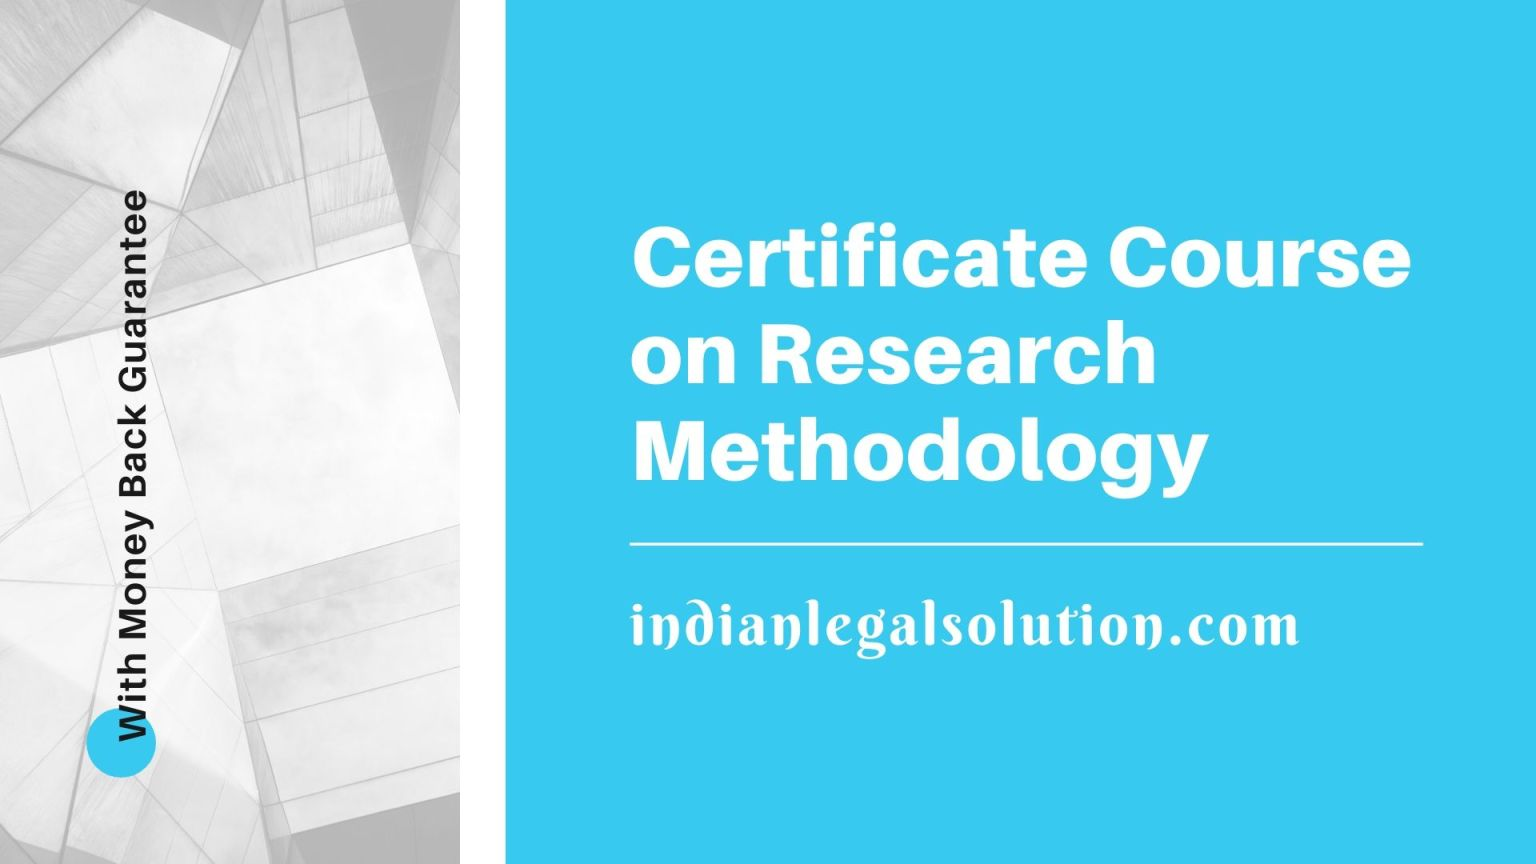 Certificate Course on Research Methodology, 12th batch by indianlegalsolution.com